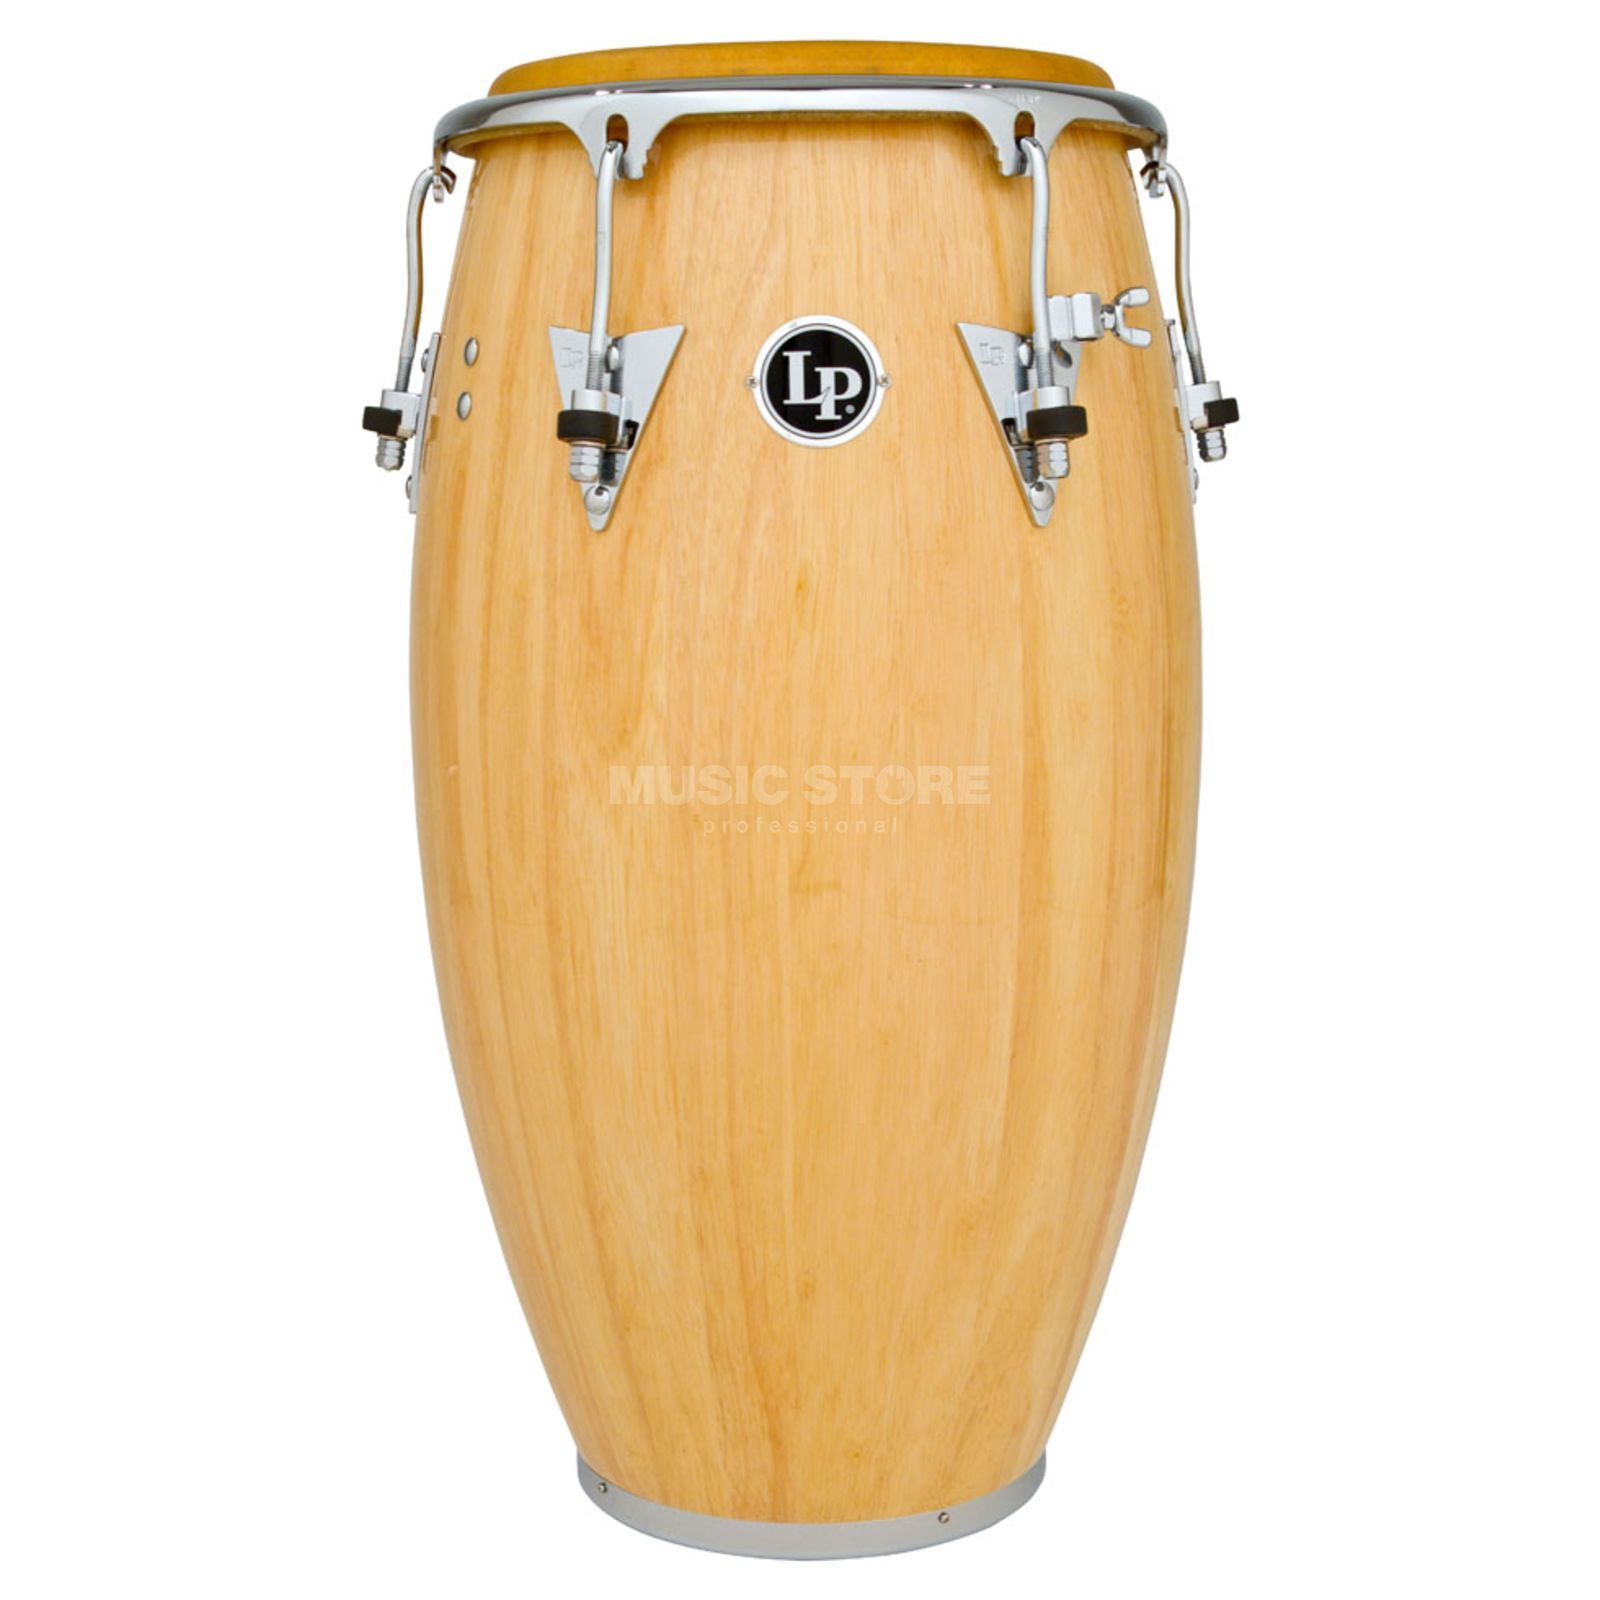 "Latin Percussion Salsa Conga LP259X-AWC, 11 3/4"" Conga, Natural Product Image"